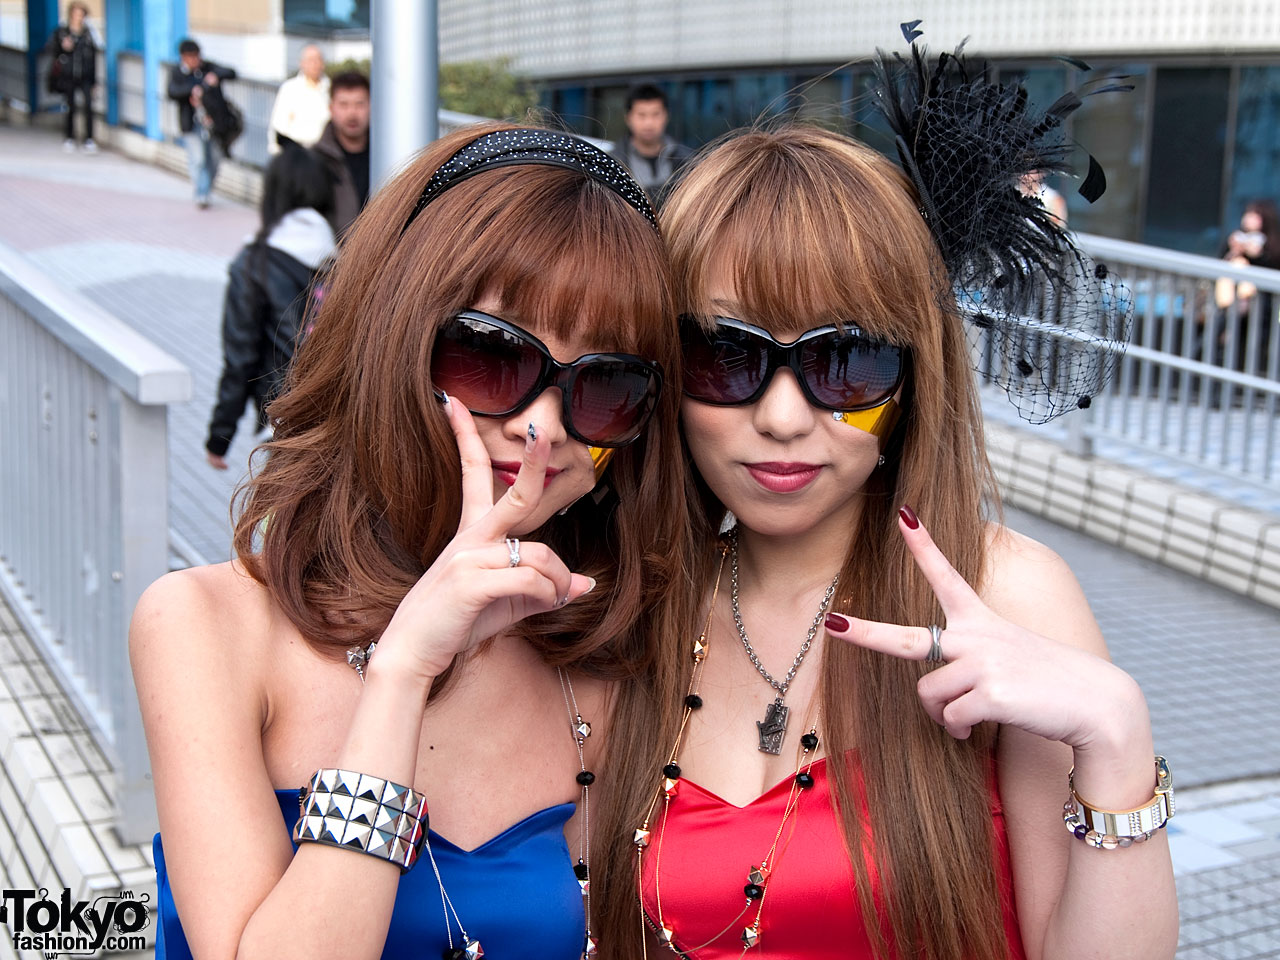 To acquire Gaga lady upset japanese fans pictures trends